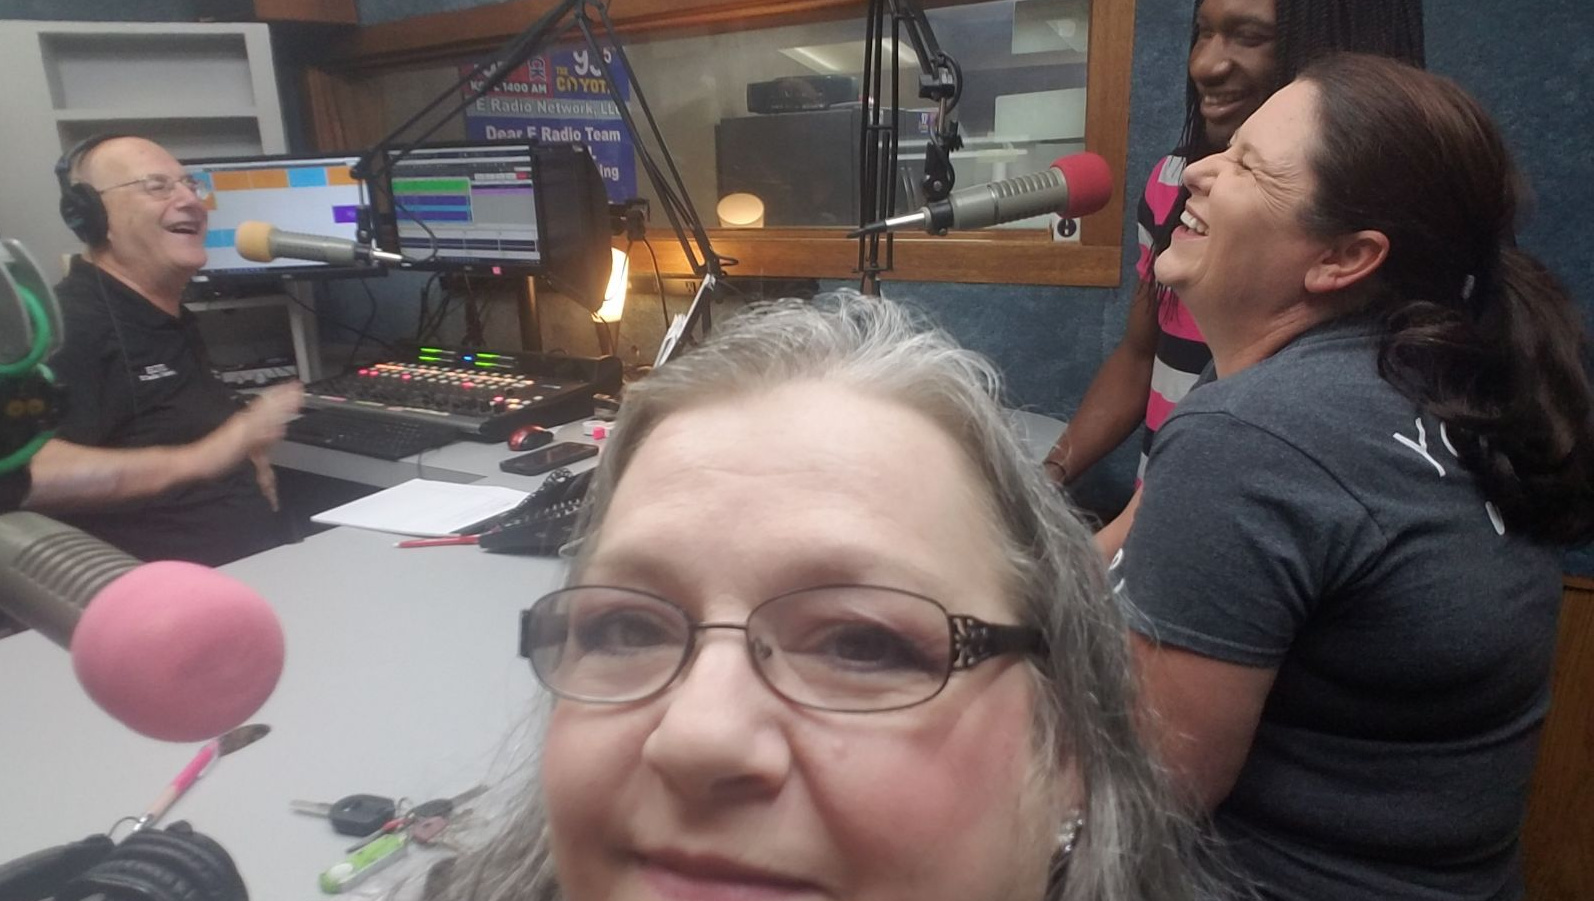 Lonnie J with KGVL local radio station interviews Pastor Deana Lowe, Meghan and Ty about the Chili Cook-Off/Games/Silent Auction Event and 1948 Fire Truck!